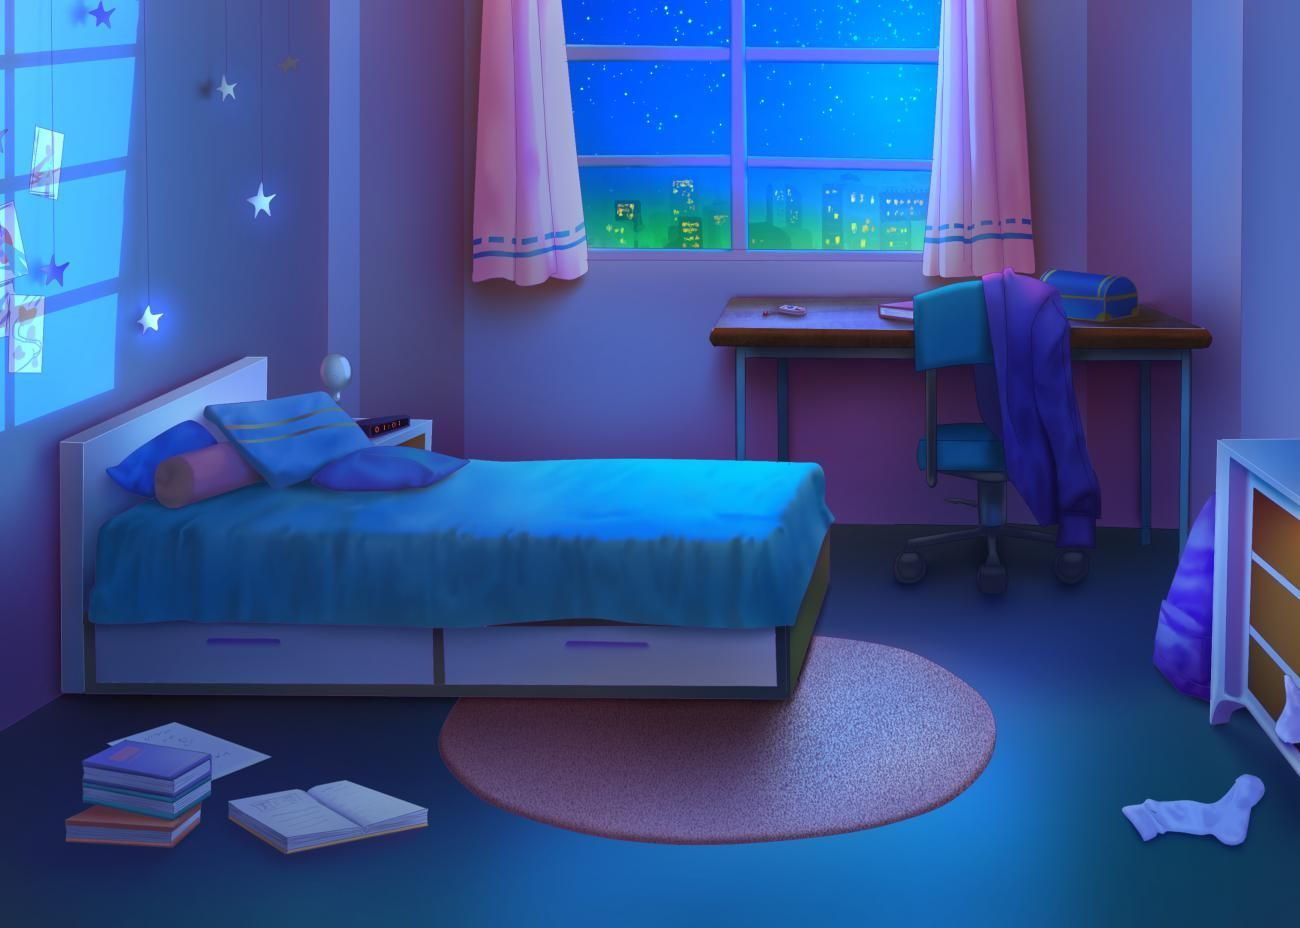 Room At Night Quarto A Noite Room At Night Babyroomanimals Babyroombohemian Babyroomfo Anime Backgrounds Wallpapers Living Room Background Bedroom Night